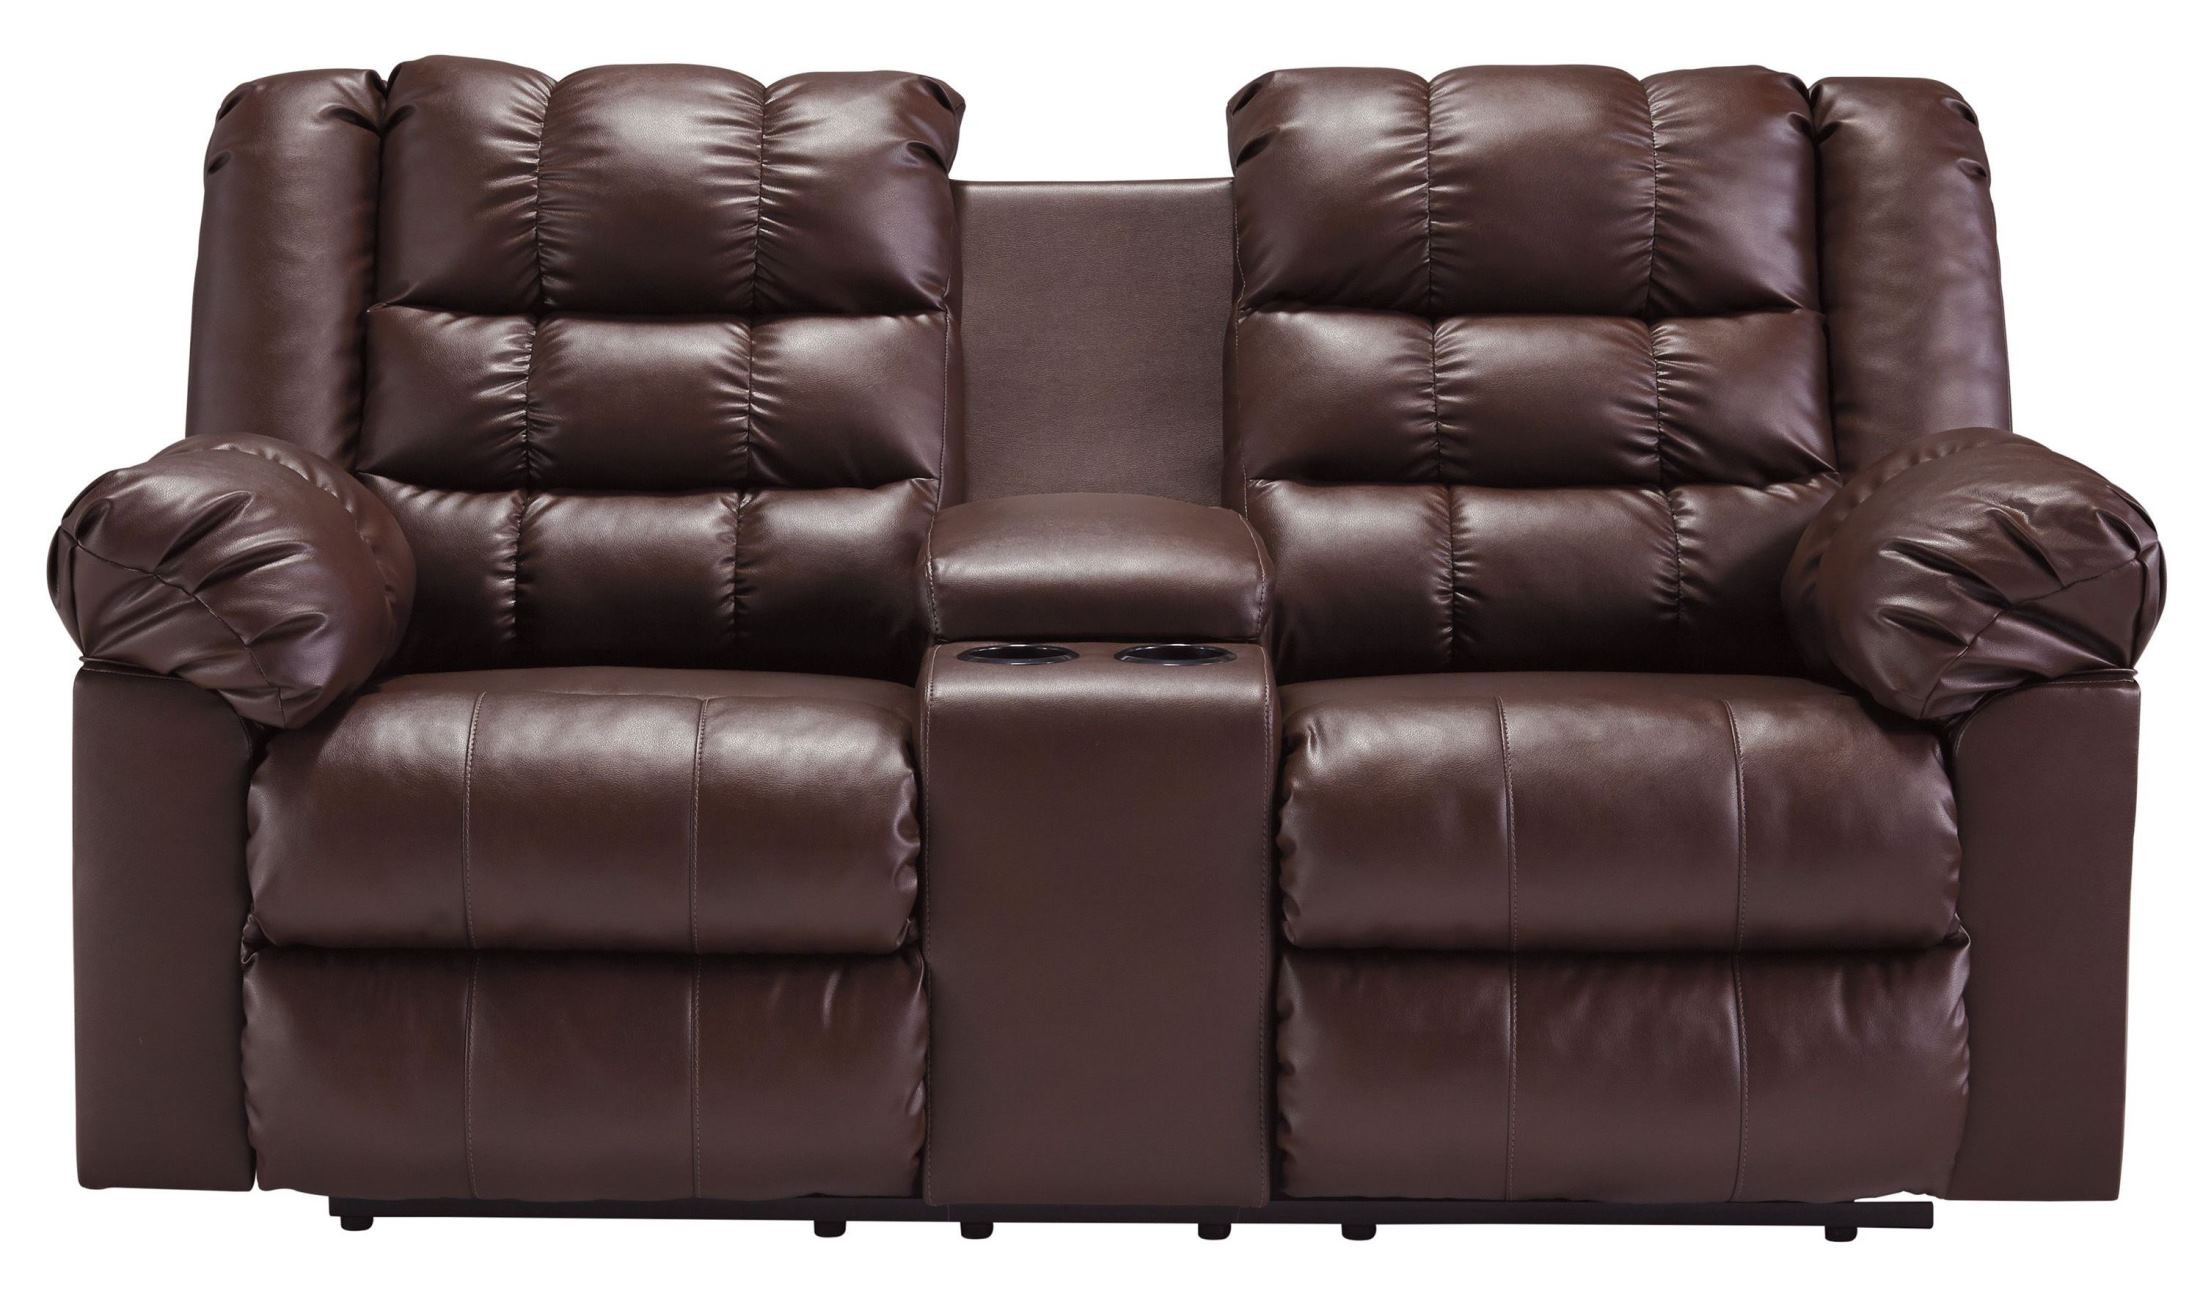 Brolayne Durablend Brown Double Reclining Loveseat With Console From Ashley 8320294 Coleman